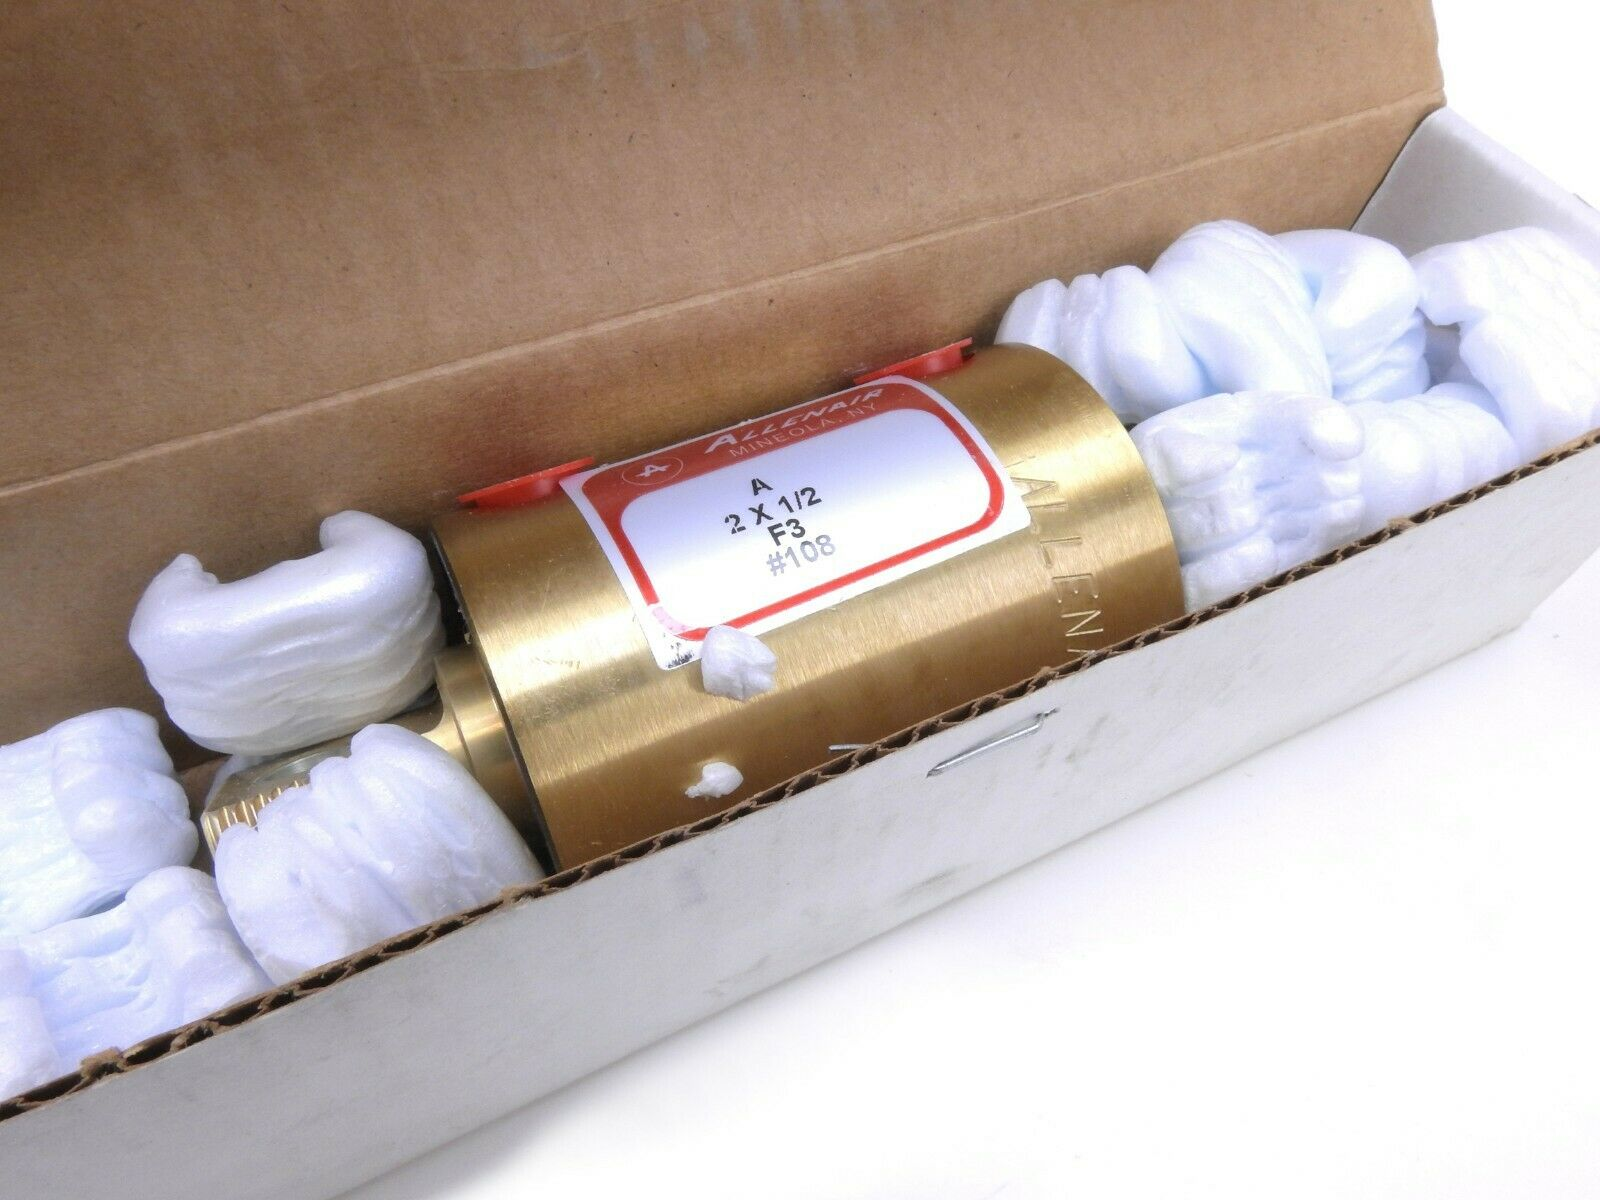 Allenair A 2 X 1/2 F3  Double Acting Pneumatic Cylinder